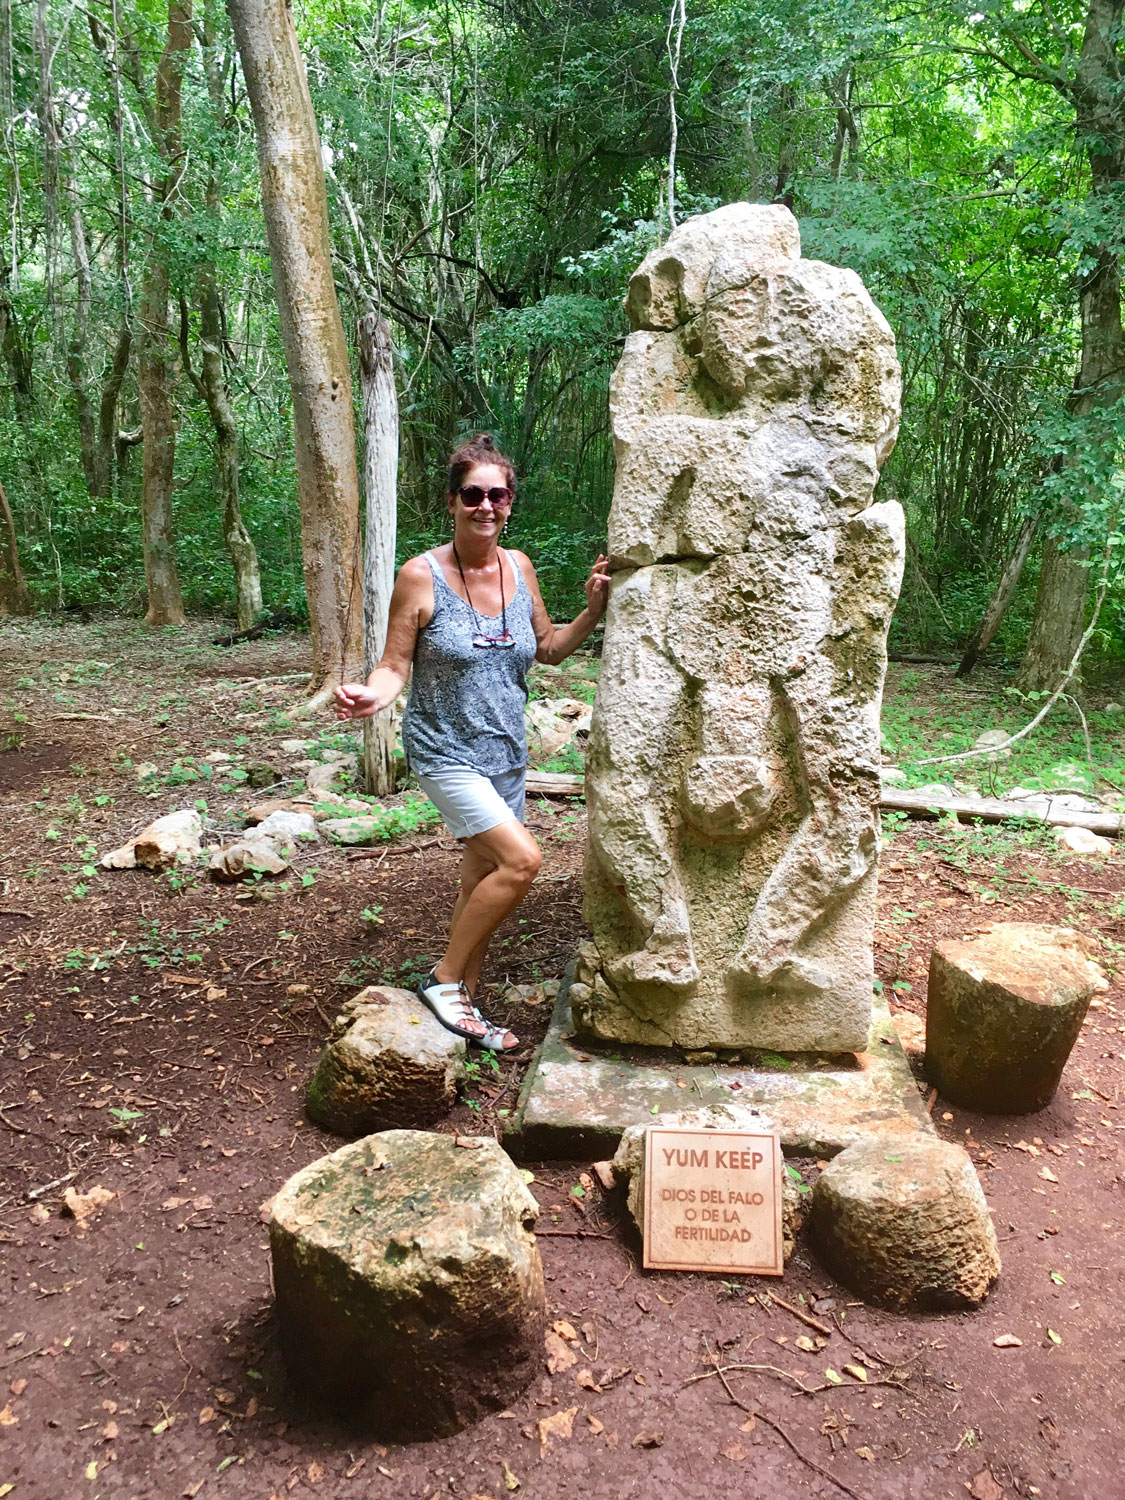 Posing with the god of fertility, Yum Keep, at the nearby ruins of Sayil.